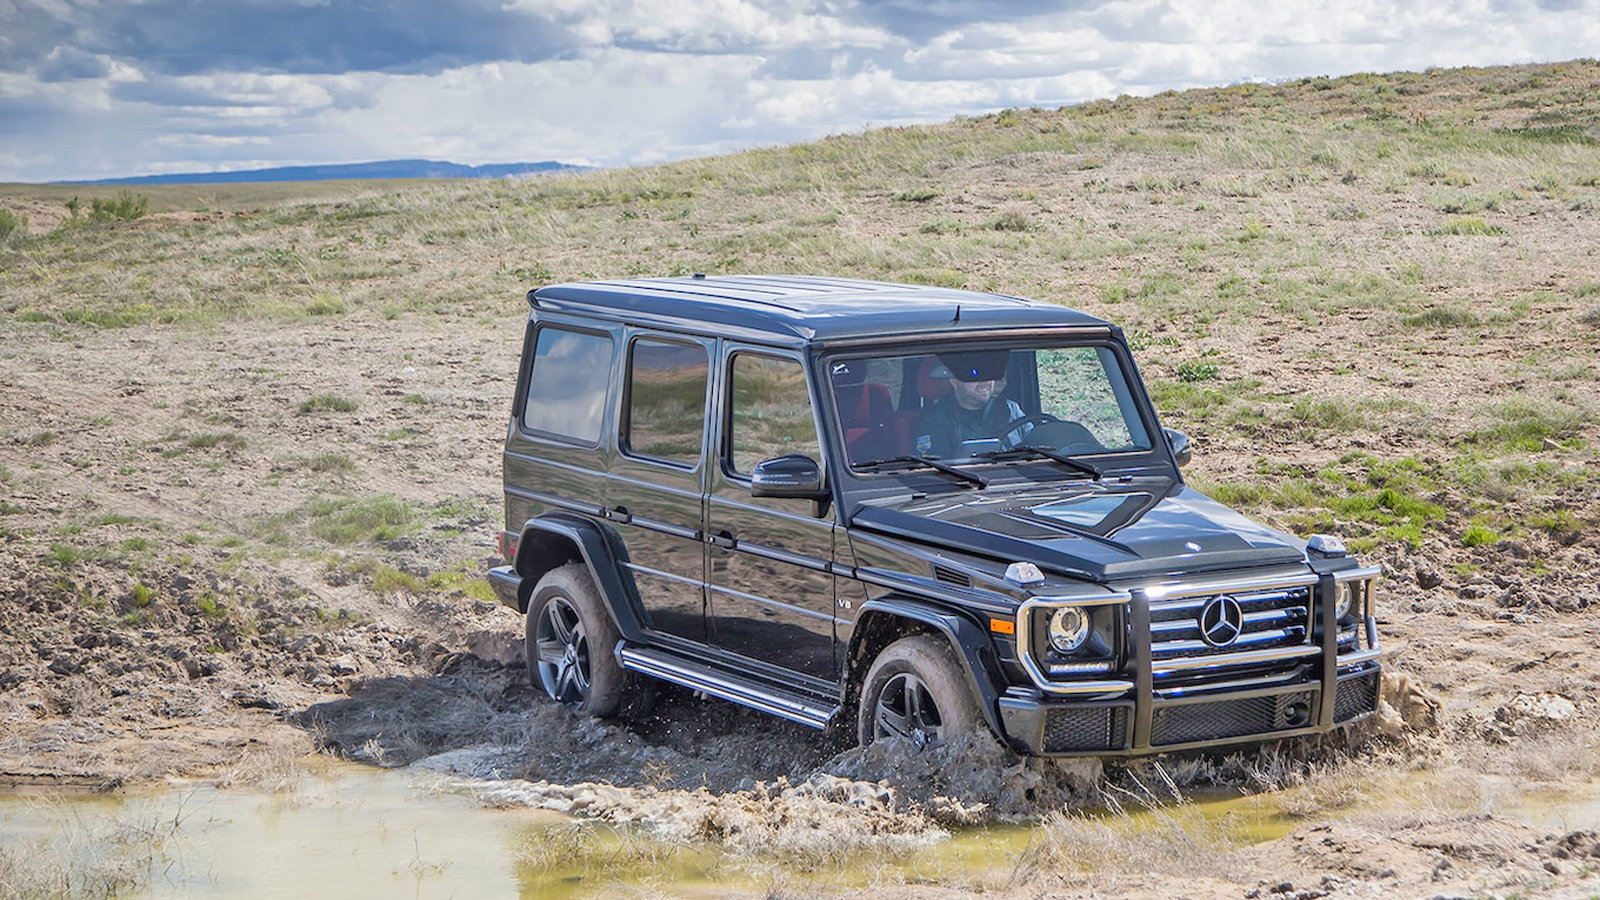 Some Reasons Why the G-Class is the Best for Off-Roading